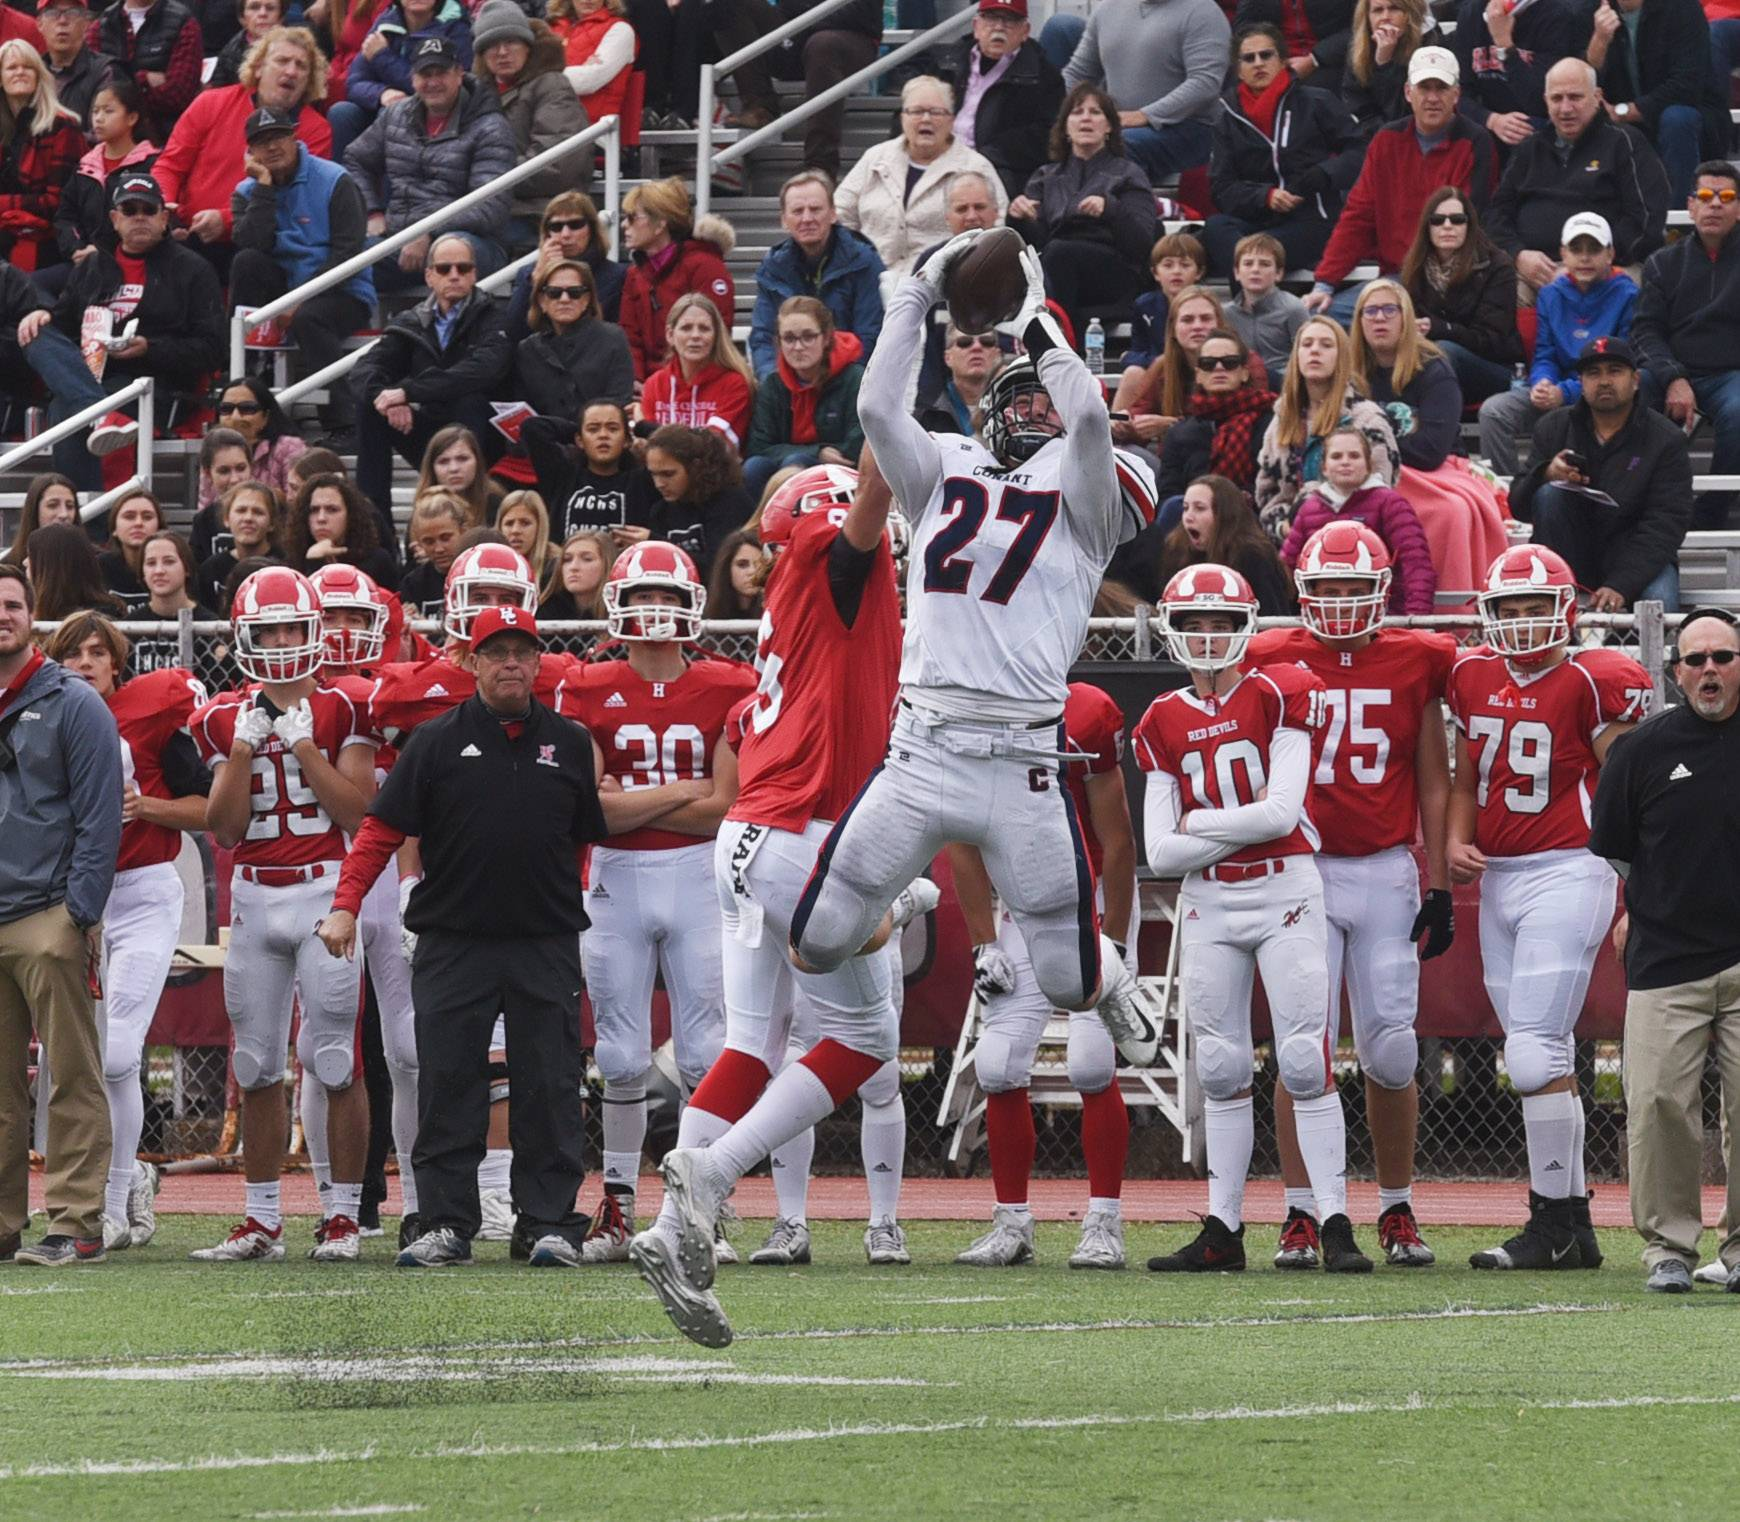 Conant's Anthony Wachal catches a pass during Saturday's Class 8A playoff game against Hinsdale Central.